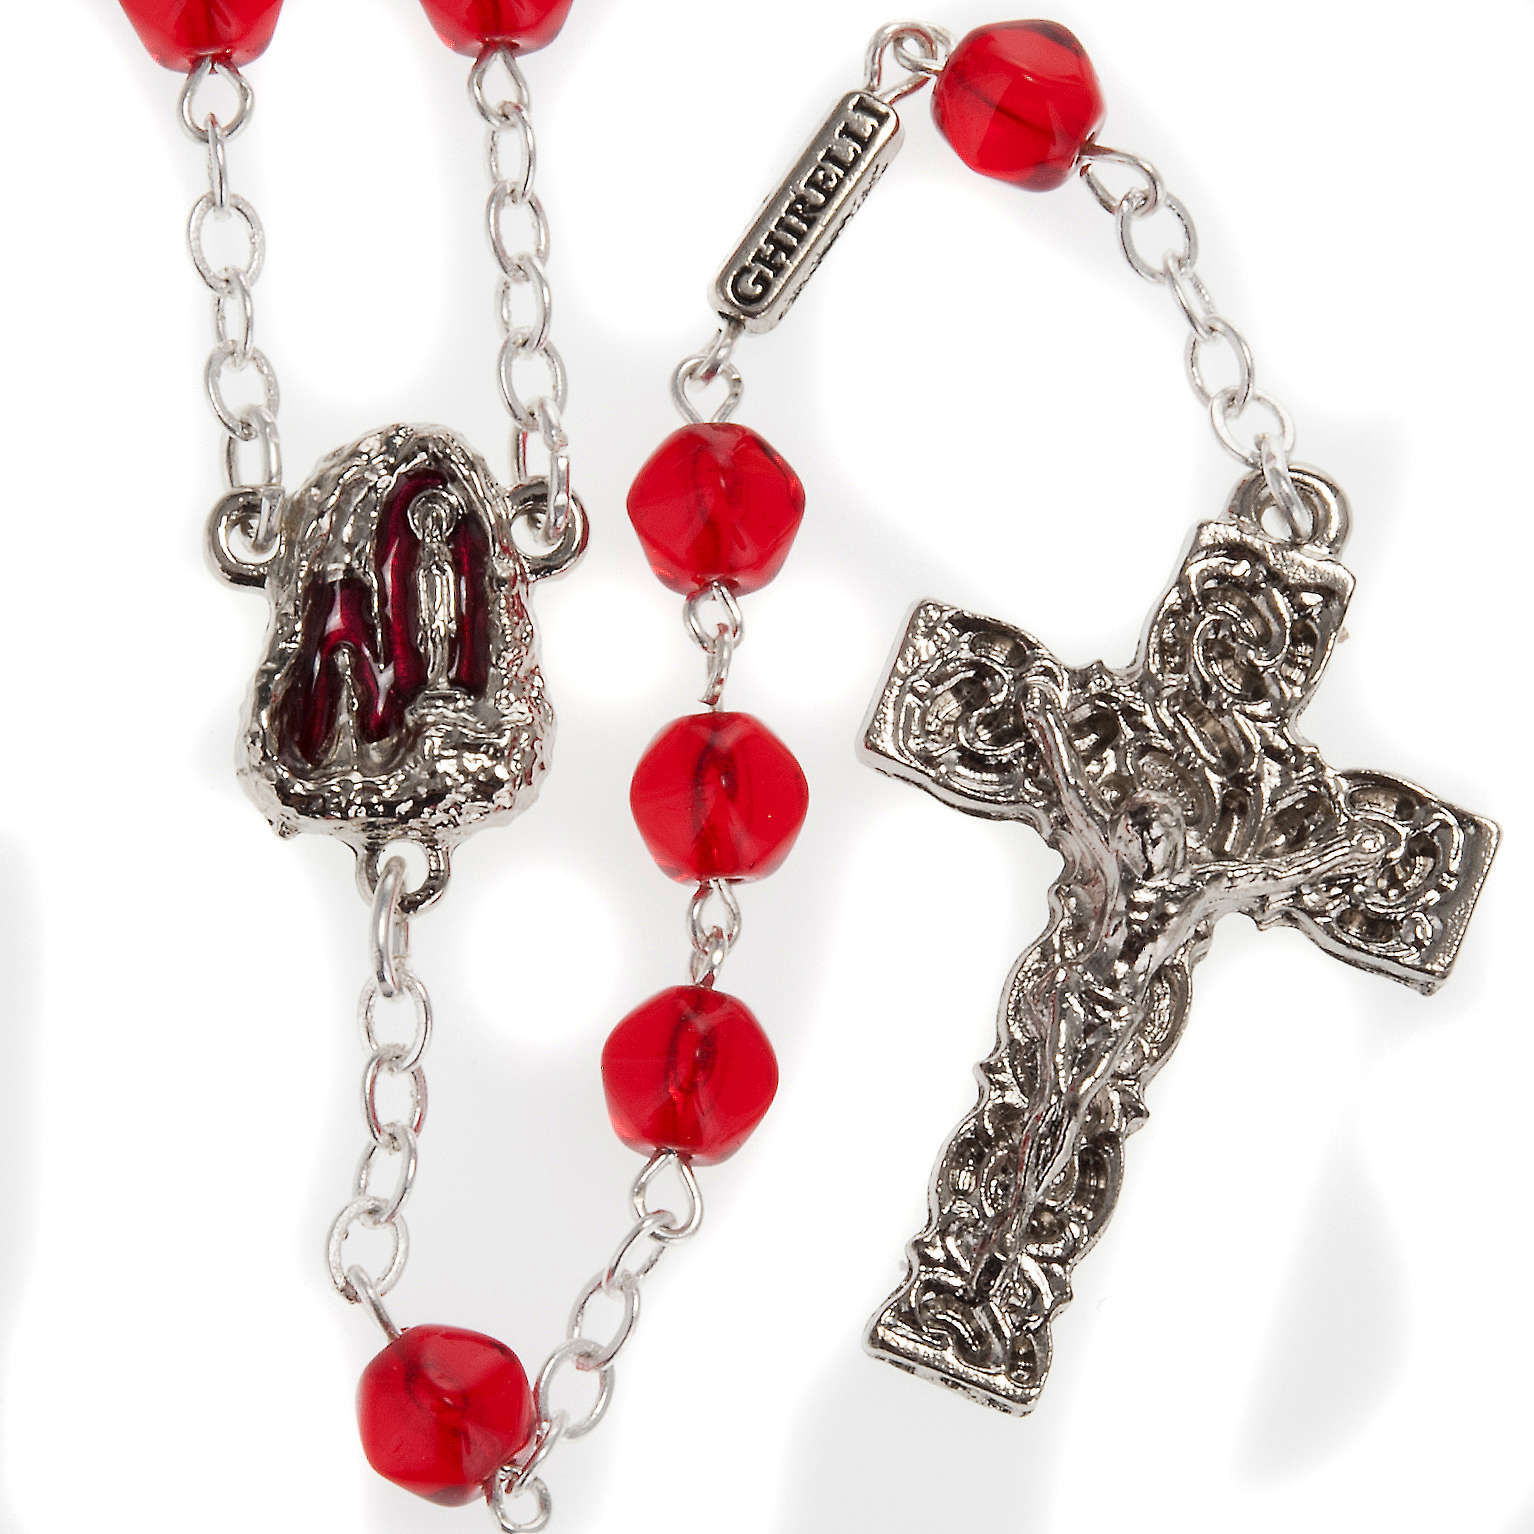 Ghirelli rosary Holy Lourdes Grotto, red 4